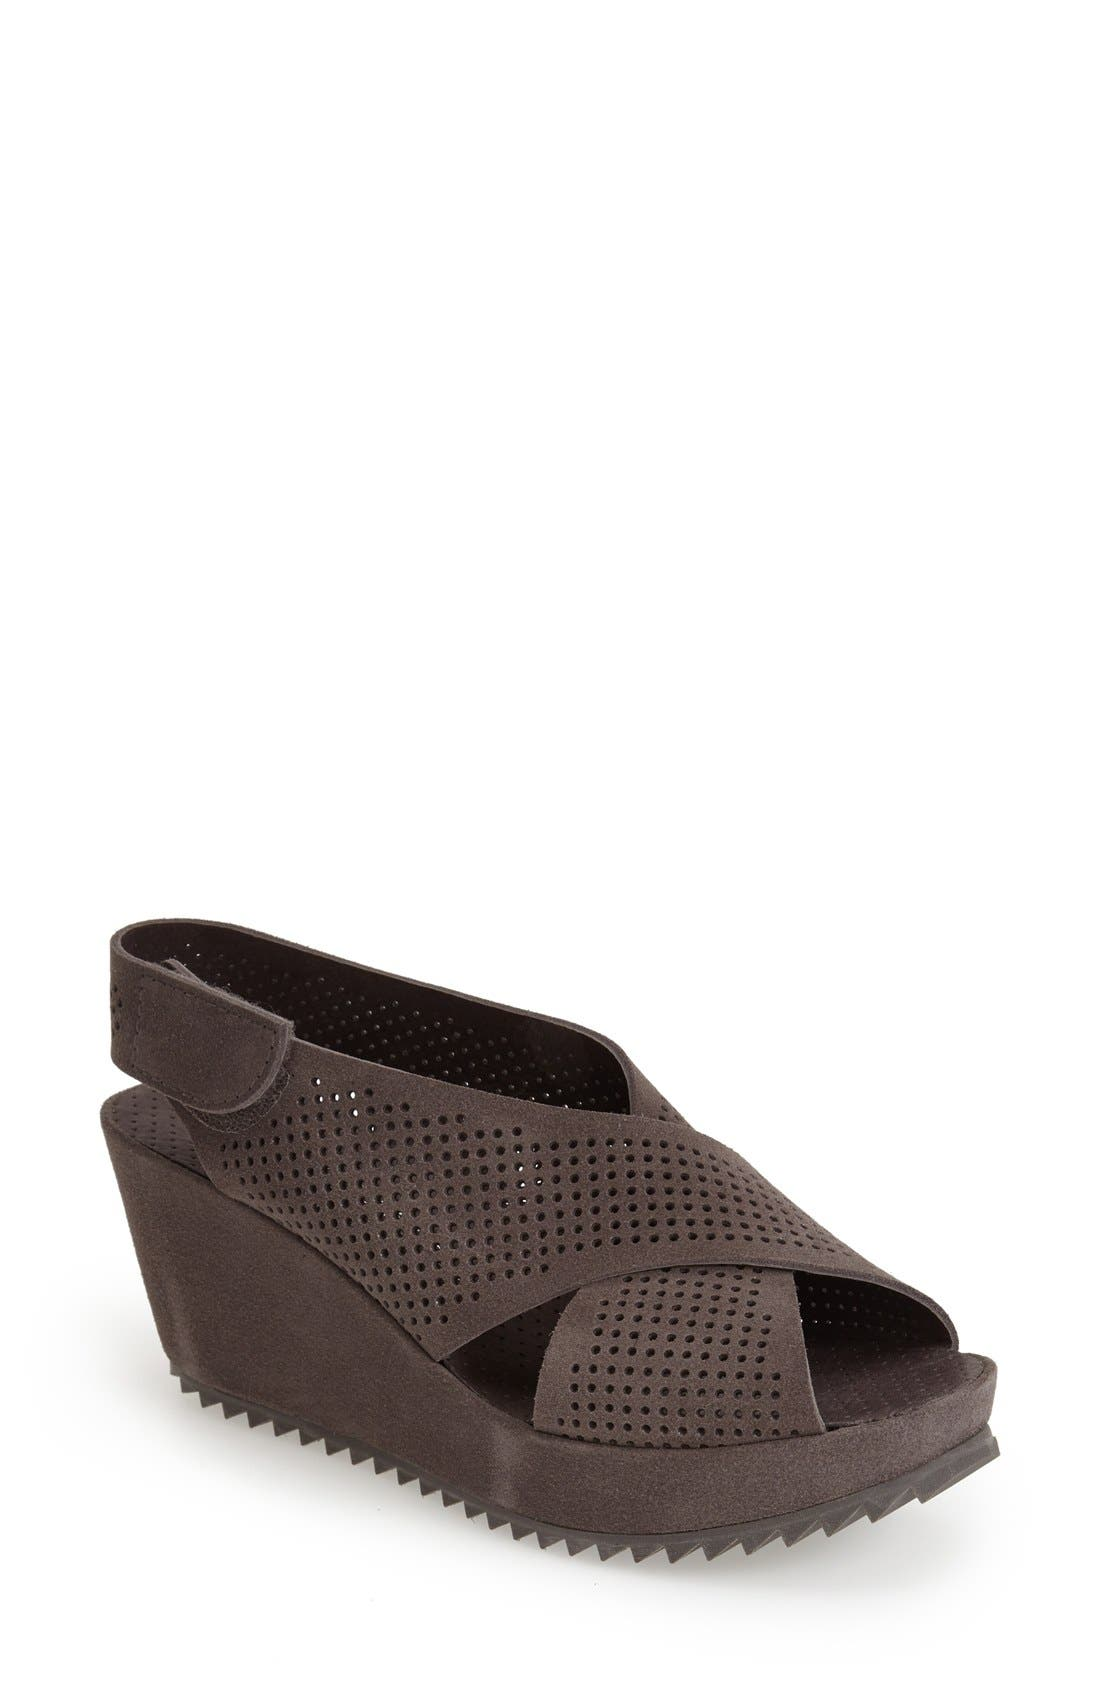 Alternate Image 1 Selected - Pedro Garcia 'Frigg' Wedge Sandal (Women)